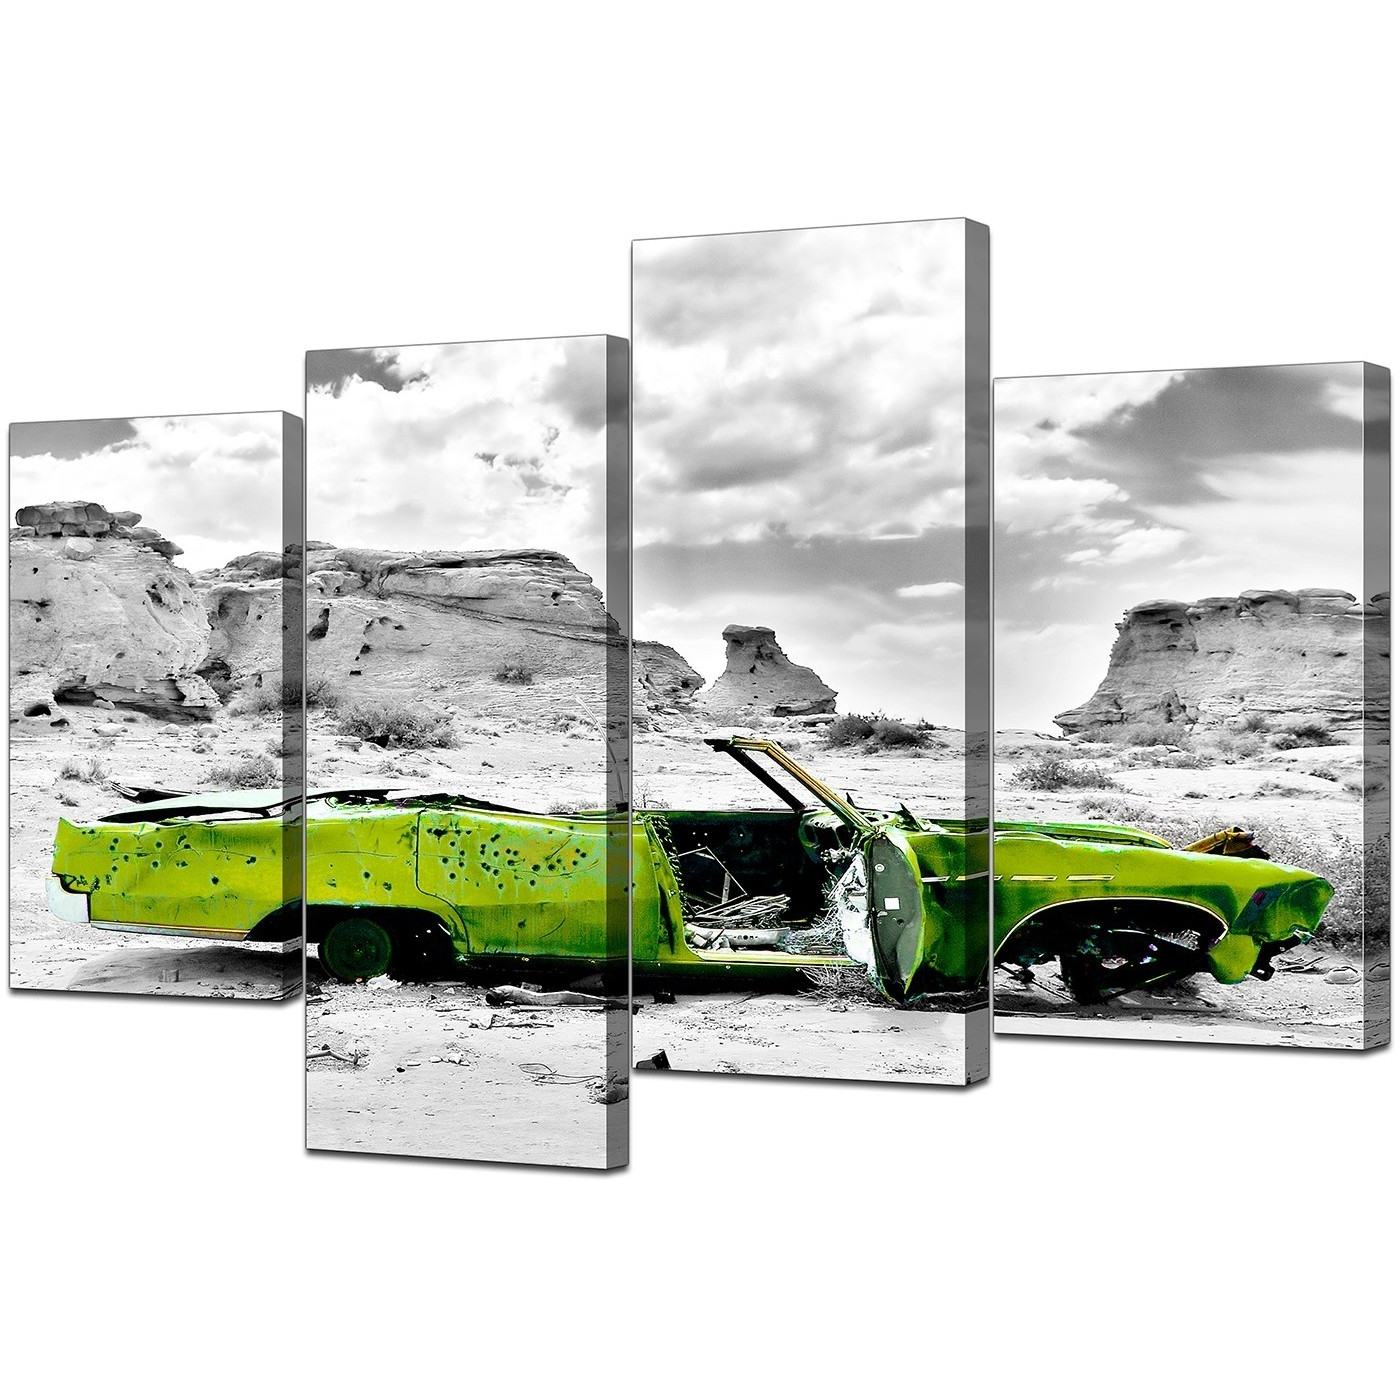 Trendy Car Canvas Wall Art Pertaining To Canvas Art Of Green Car In Black & White For Your Office (View 13 of 15)